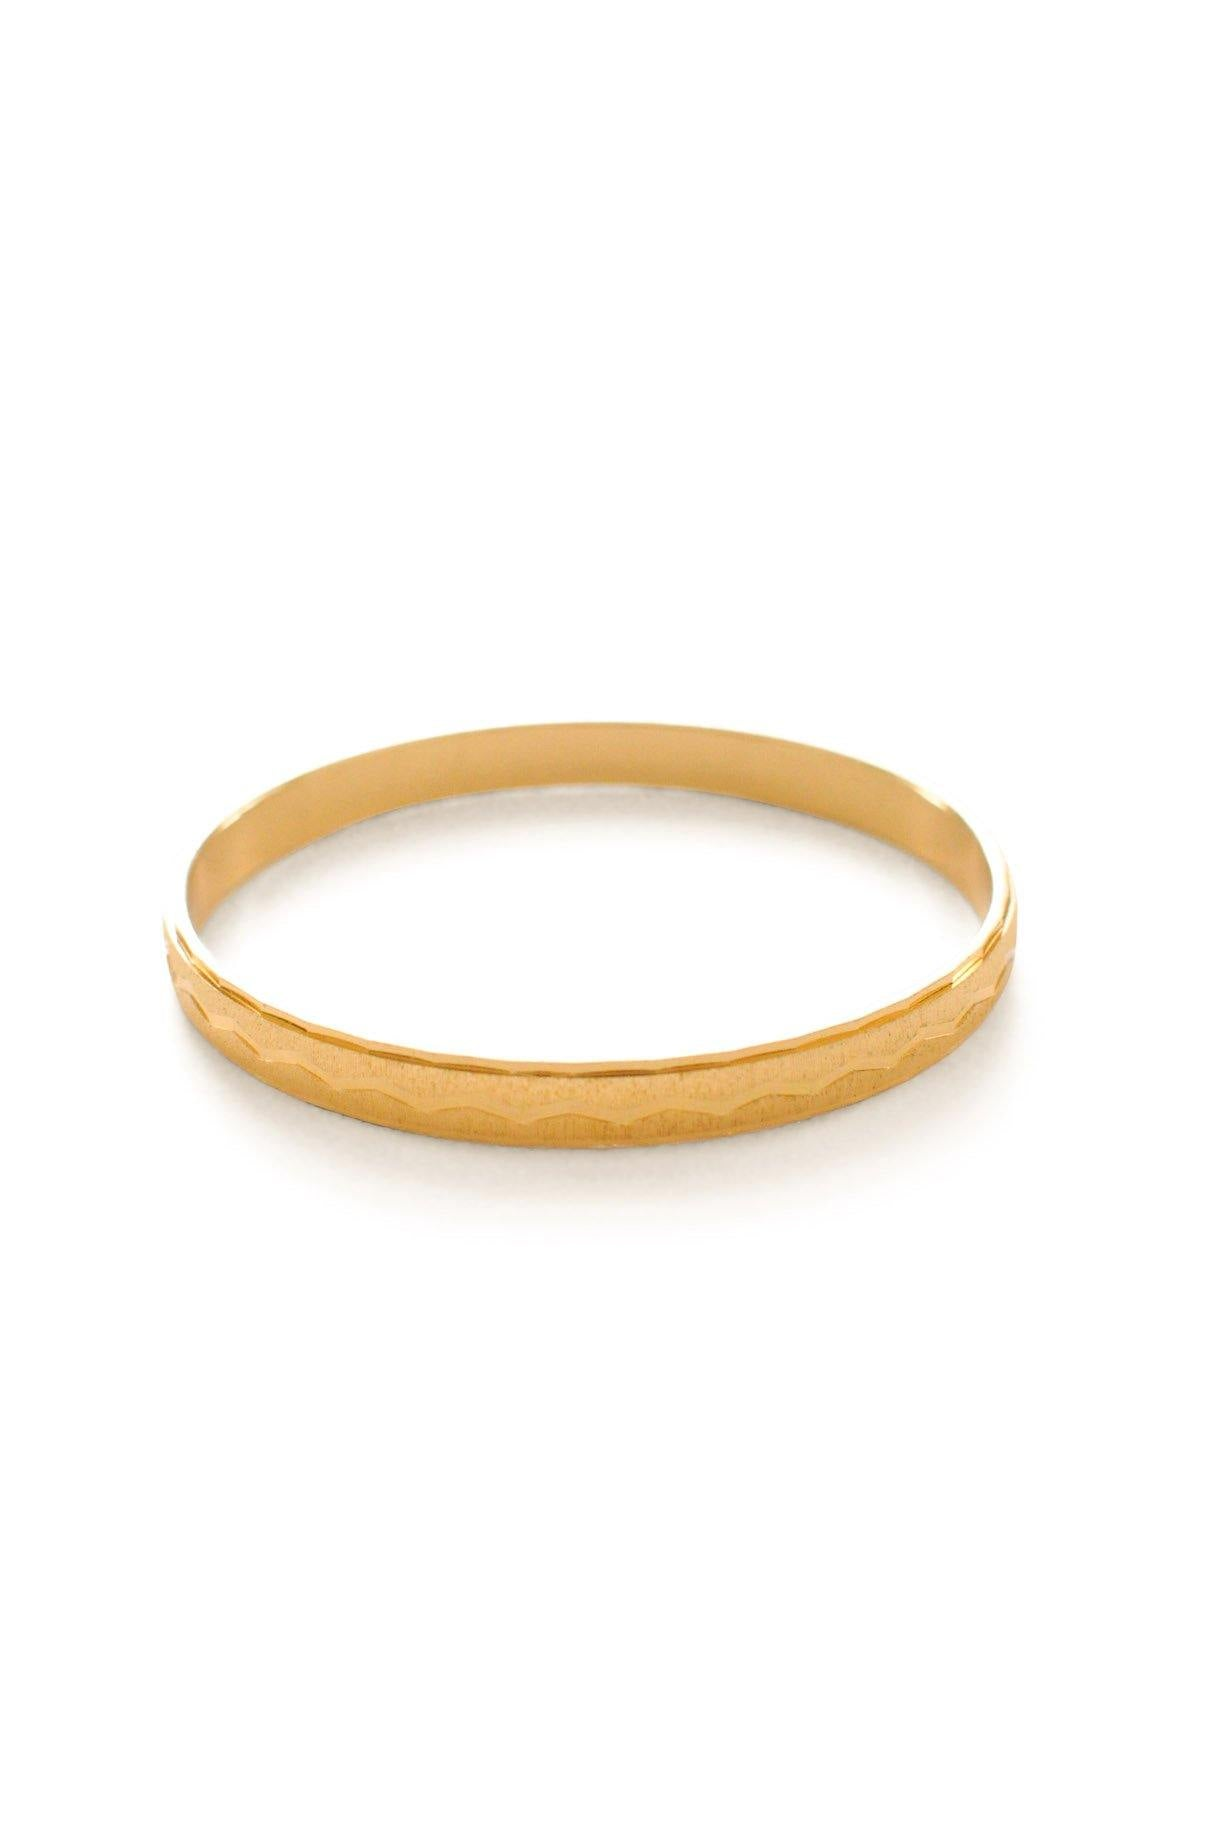 Monet Gold Etched Bangle